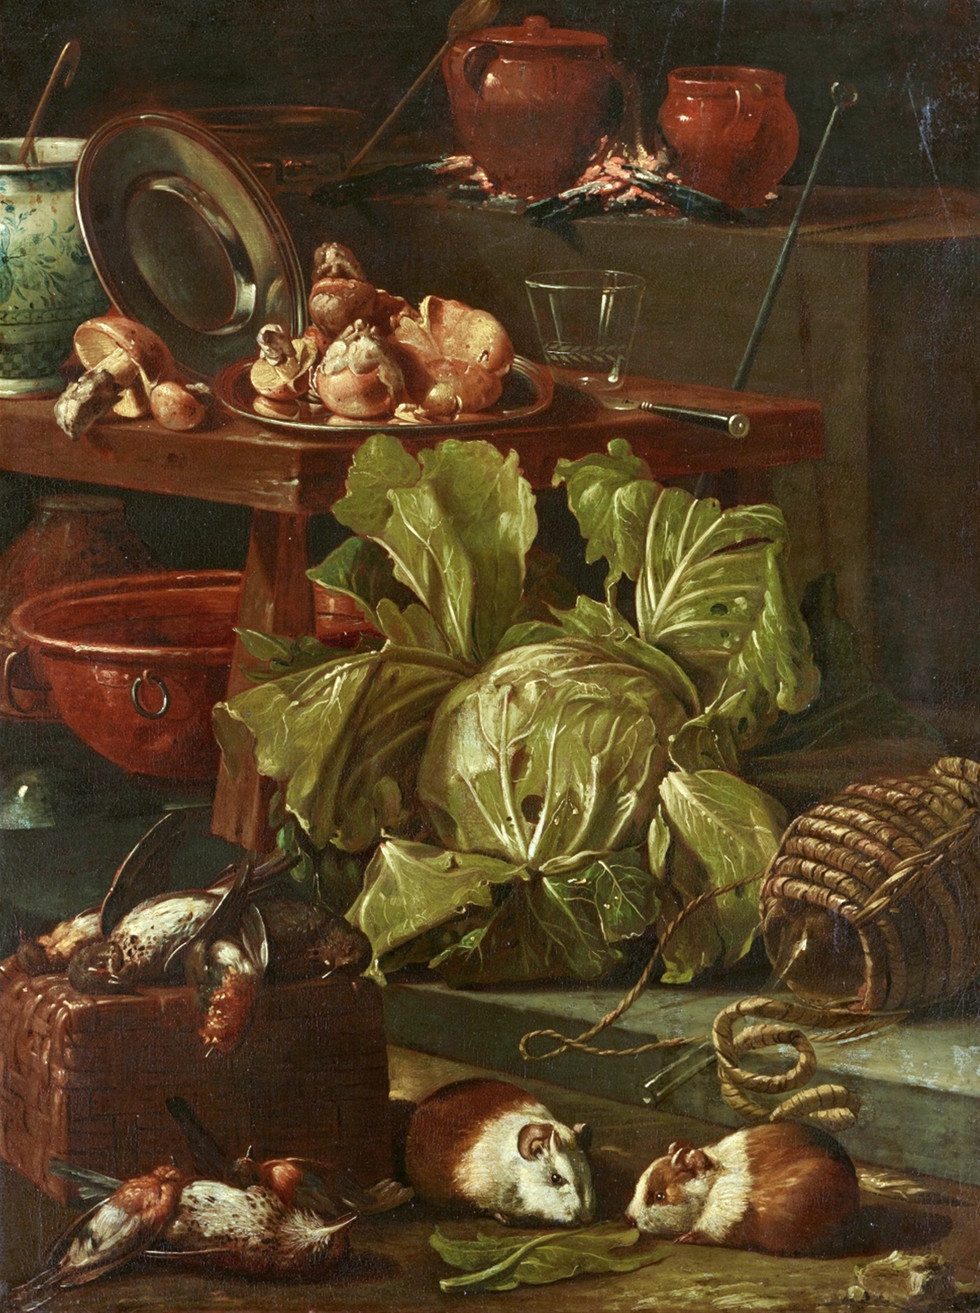 Kitchen Still Life with Vegetables and Poultry